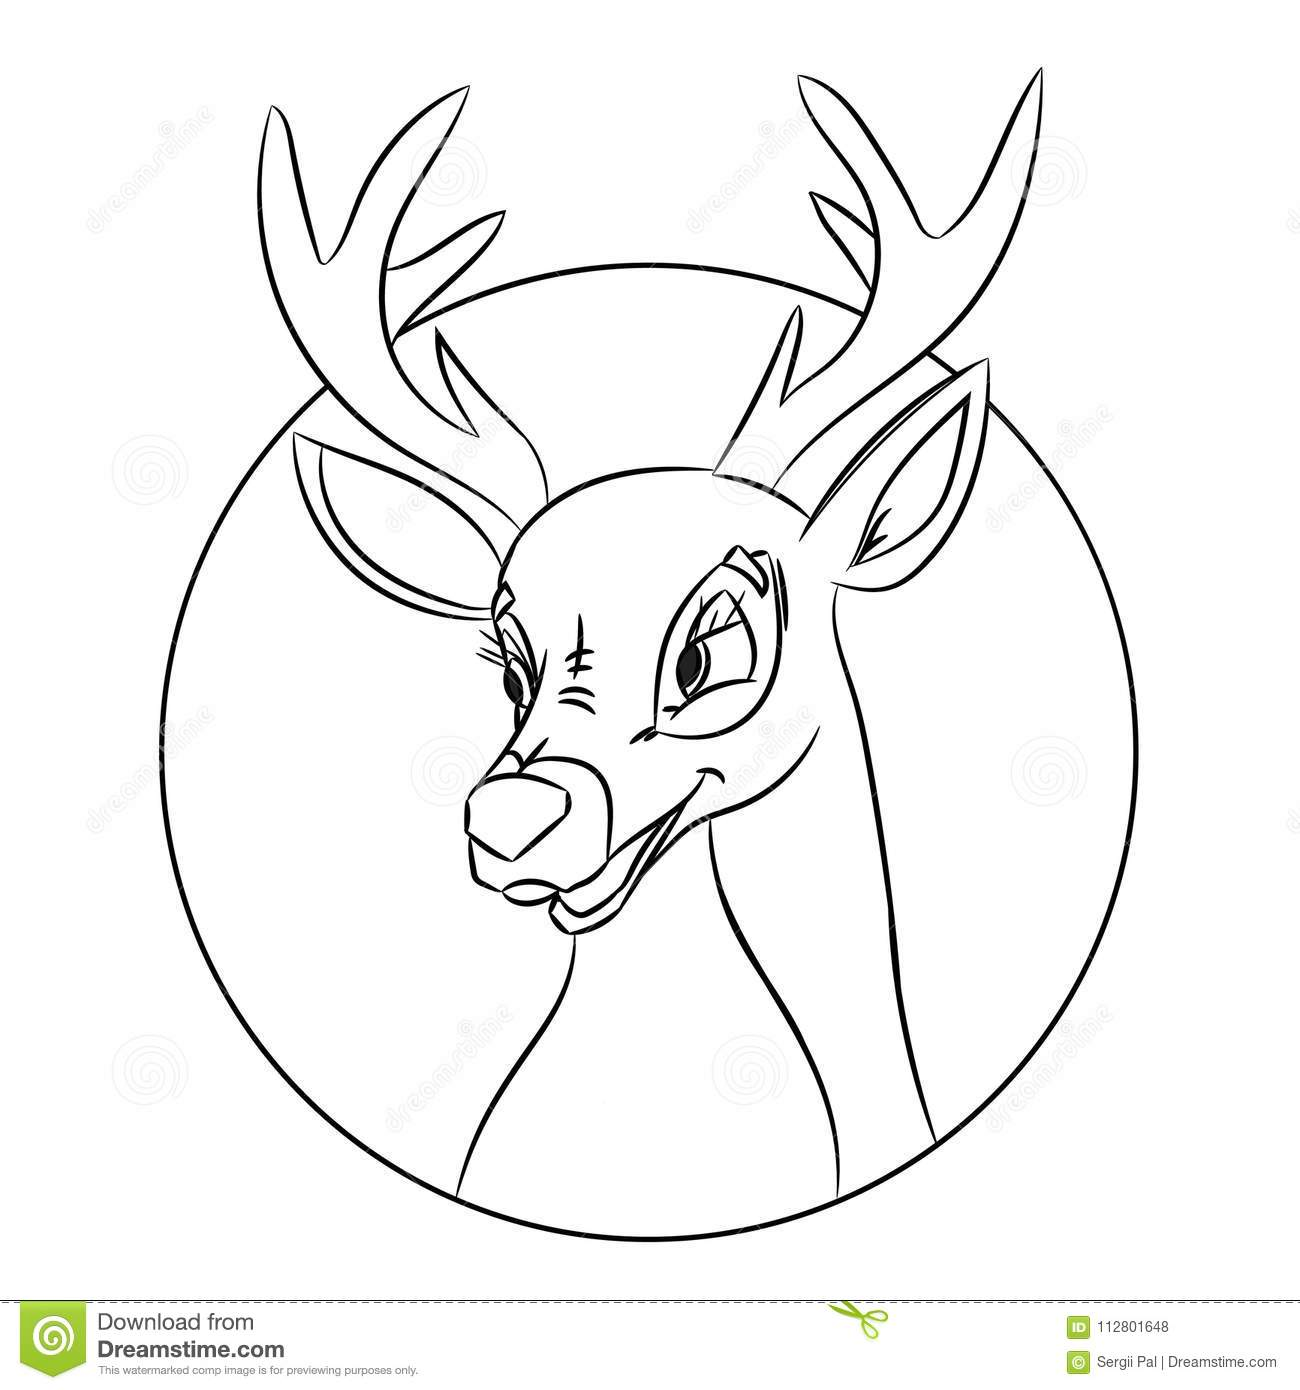 Hand Drawn Deer Head Coloring Page, Picture Made In Classic Cartoon ...